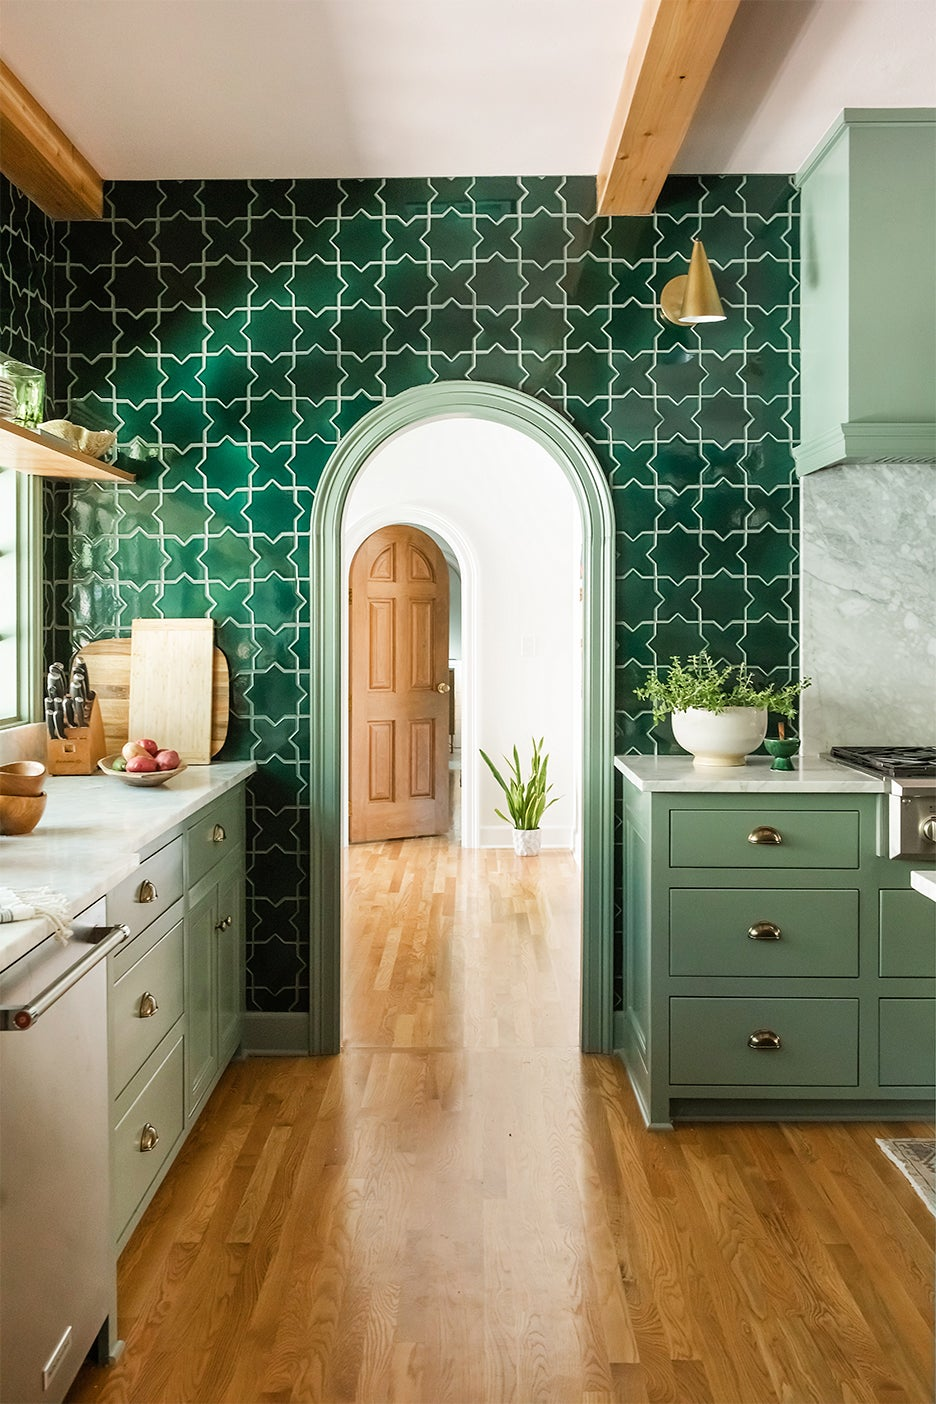 arch doorway leading out of kitchen